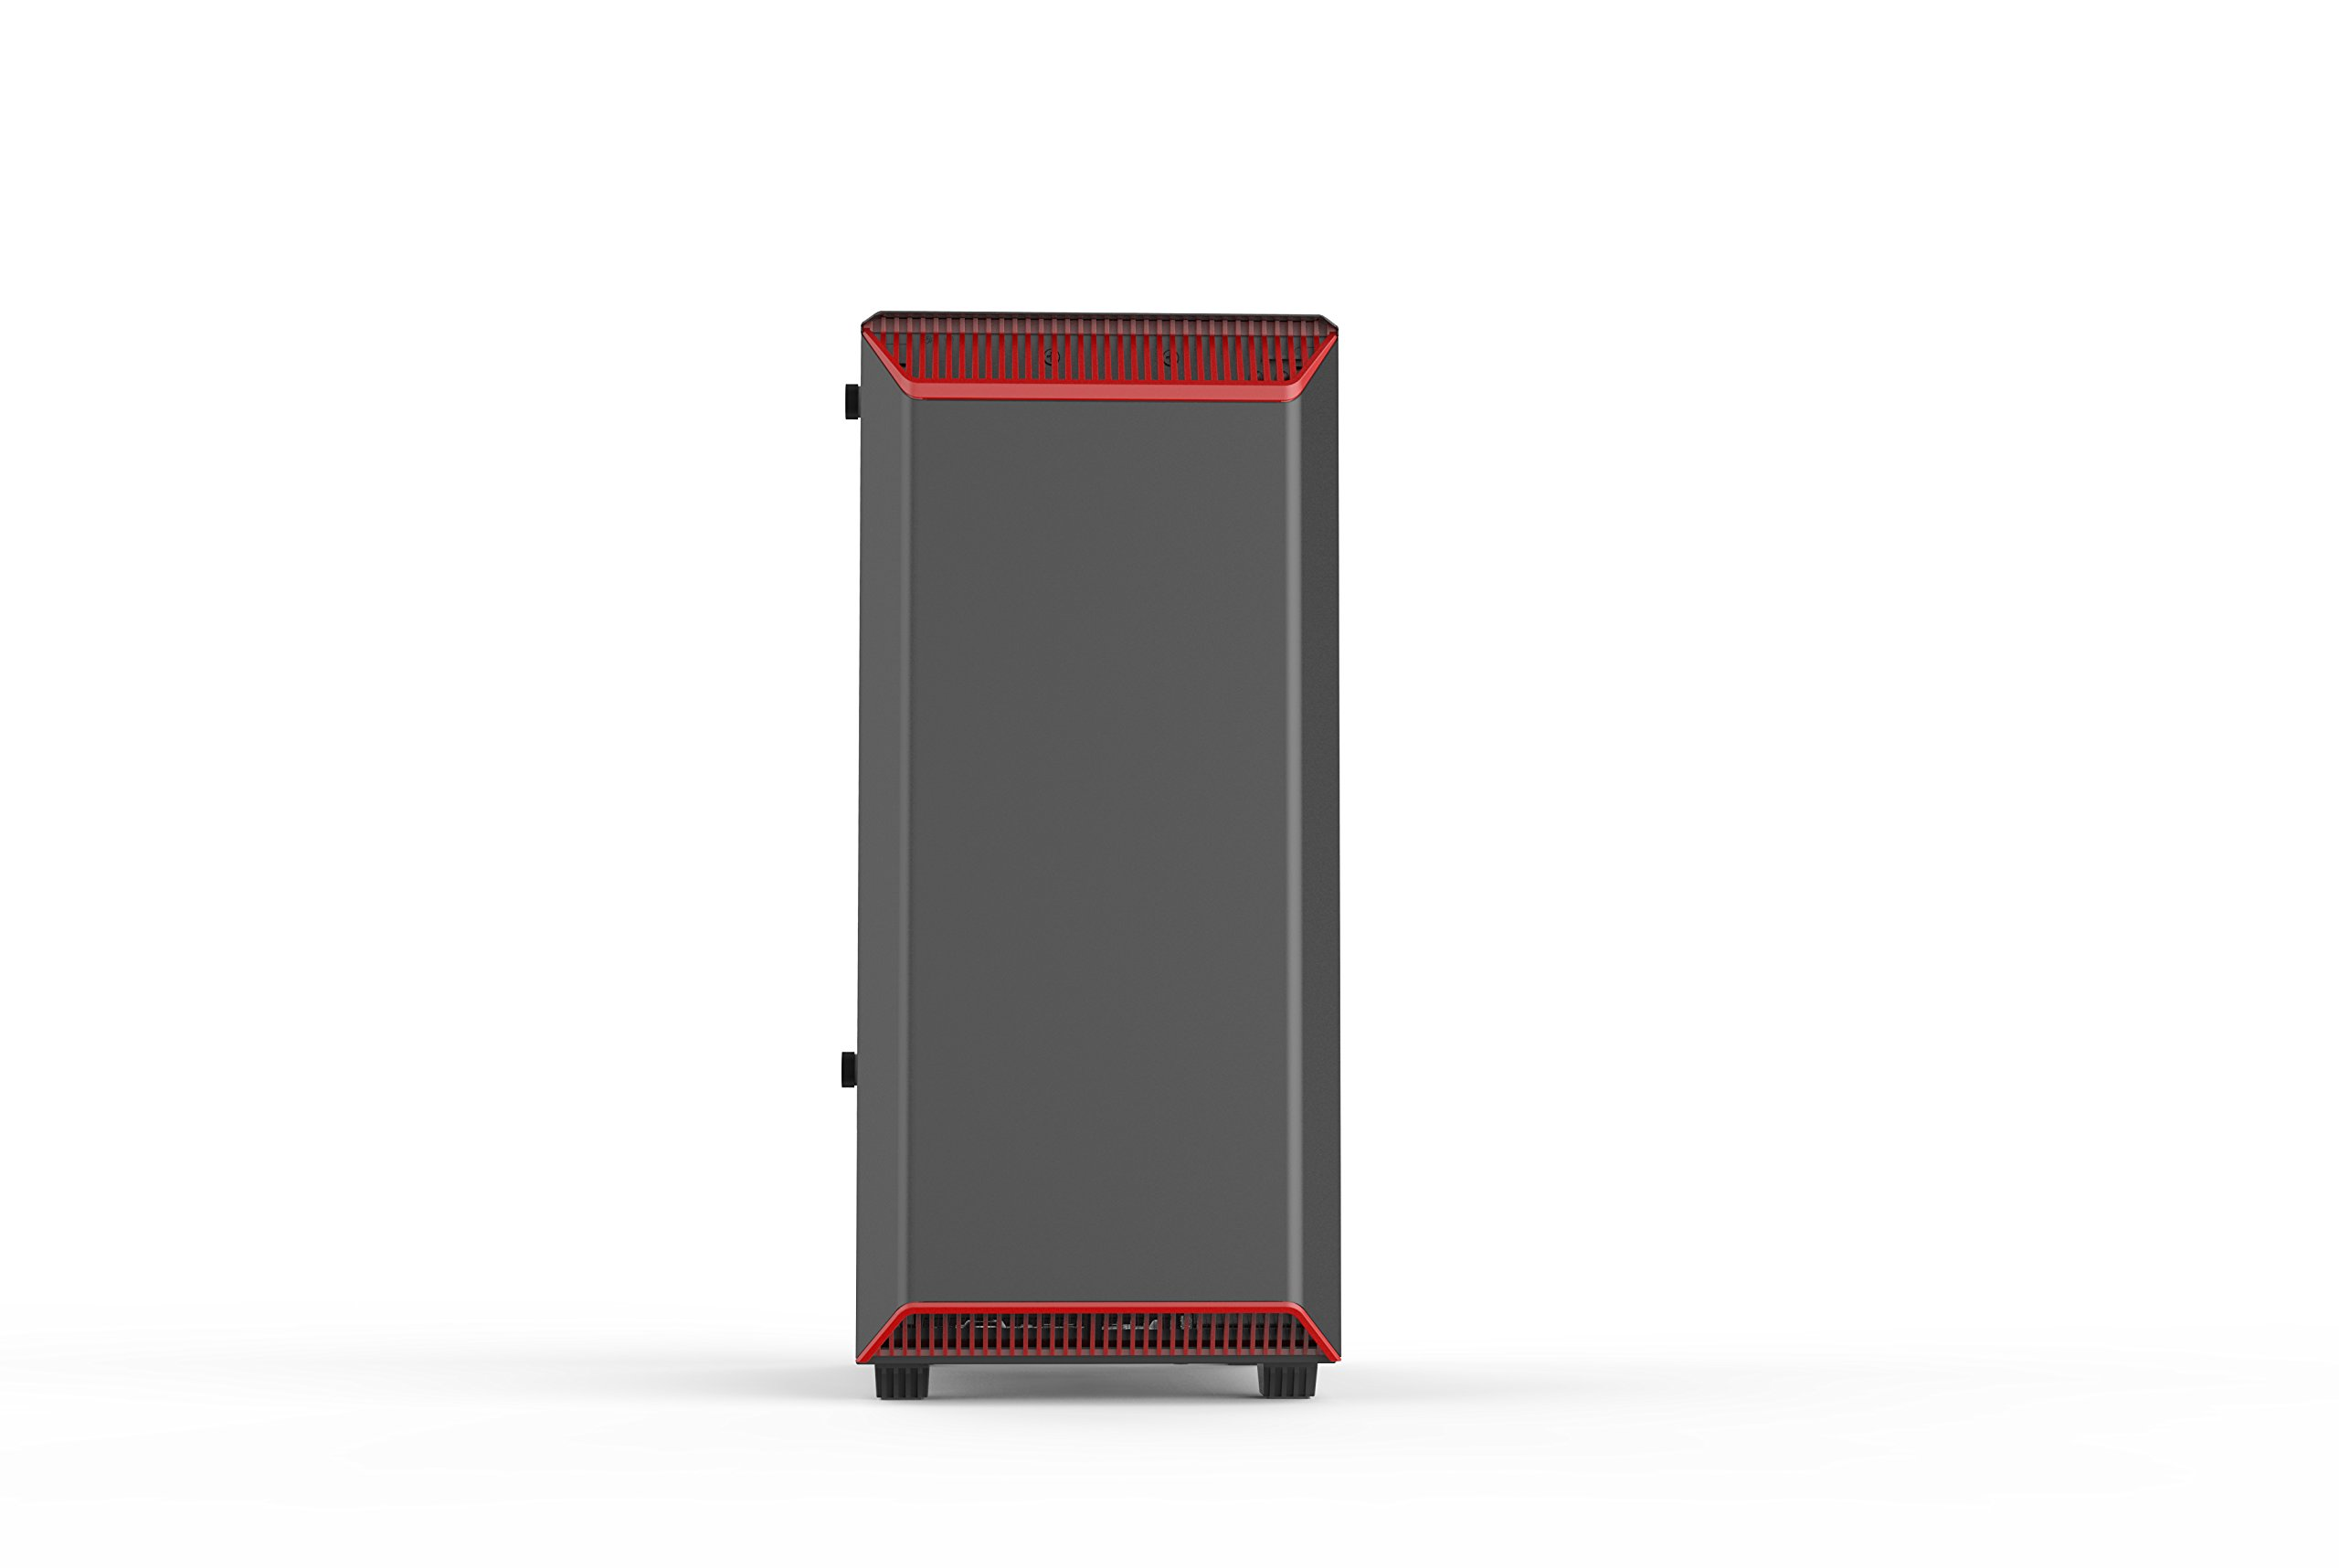 Phanteks PH-EC300PTG_BR Eclipse P300 Tempered Glass Steel ATX Mid Tower Case Black/Red by Phanteks (Image #3)